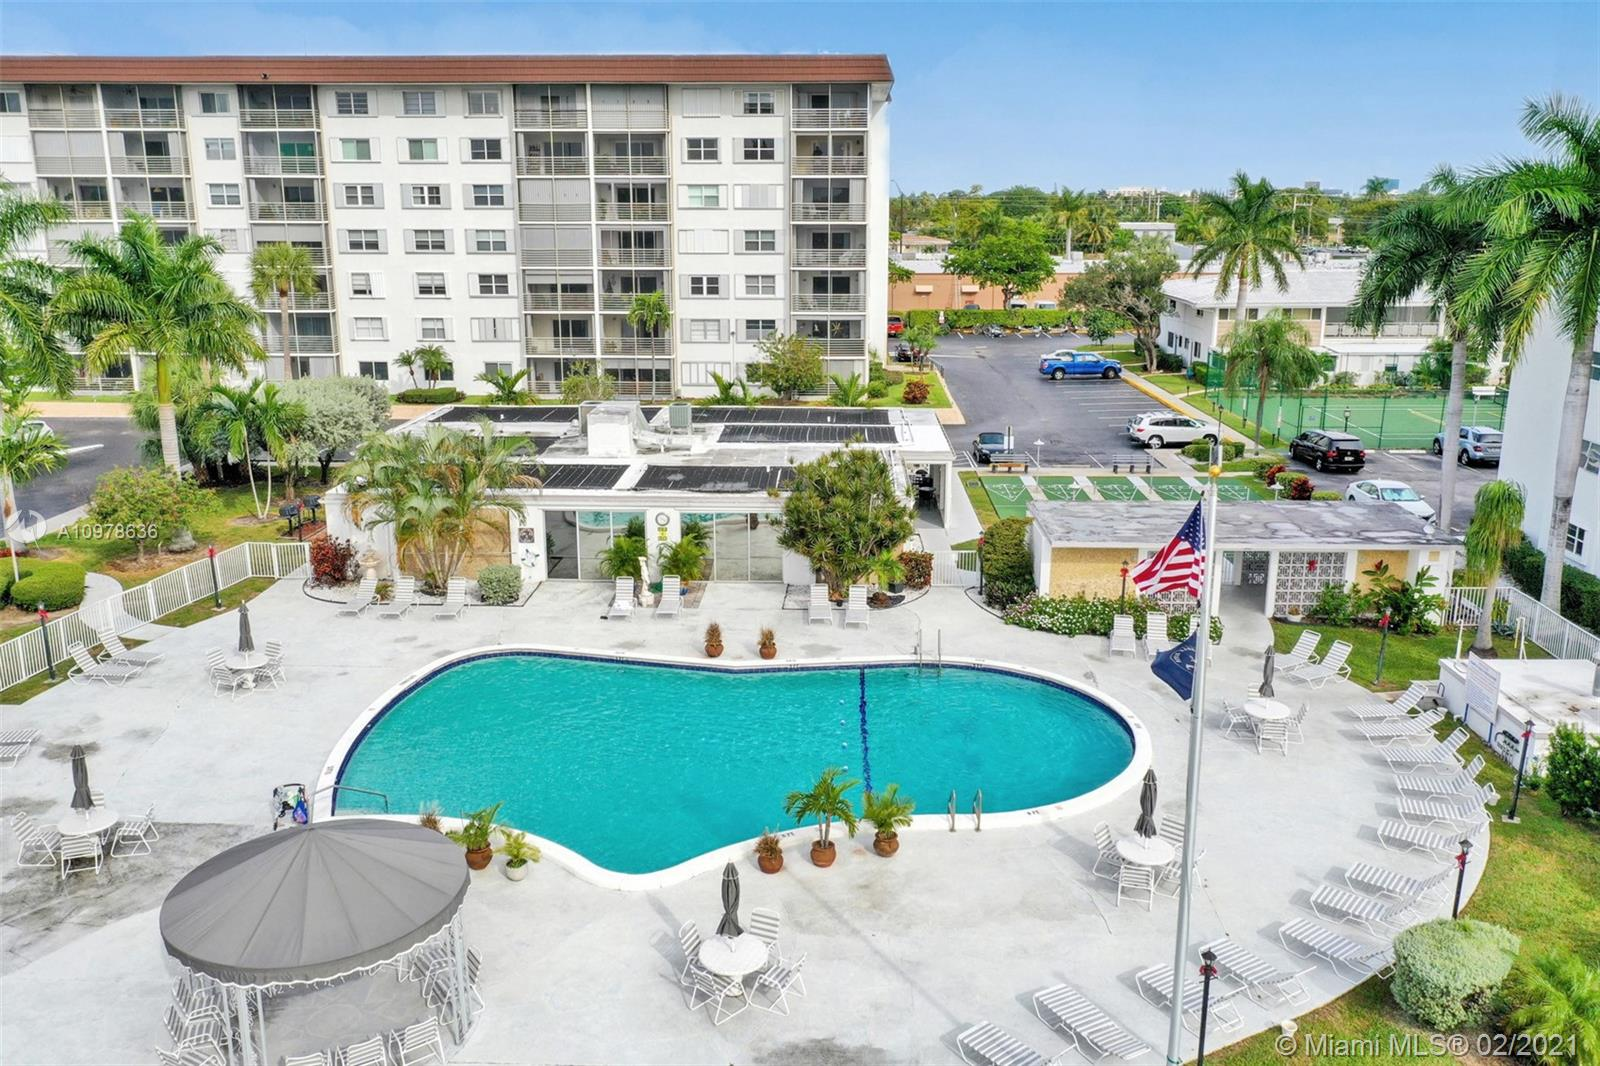 Perfect location between the entertainment districts of Wilton Manors and Oakland Park. This light filled condo is perfectly laid out for easy living with two bedrooms, two bath that include new floors throughout and a screened in porch with partial river view. The grounds are perfectly landscaped and include tennis and shuffleboard courts, a large pool with clubhouse that includes exercise room and sauna. Leave your door and be at the beach in 10 minutes. Direct TV and internet included in HOA. Ok to lease first year!